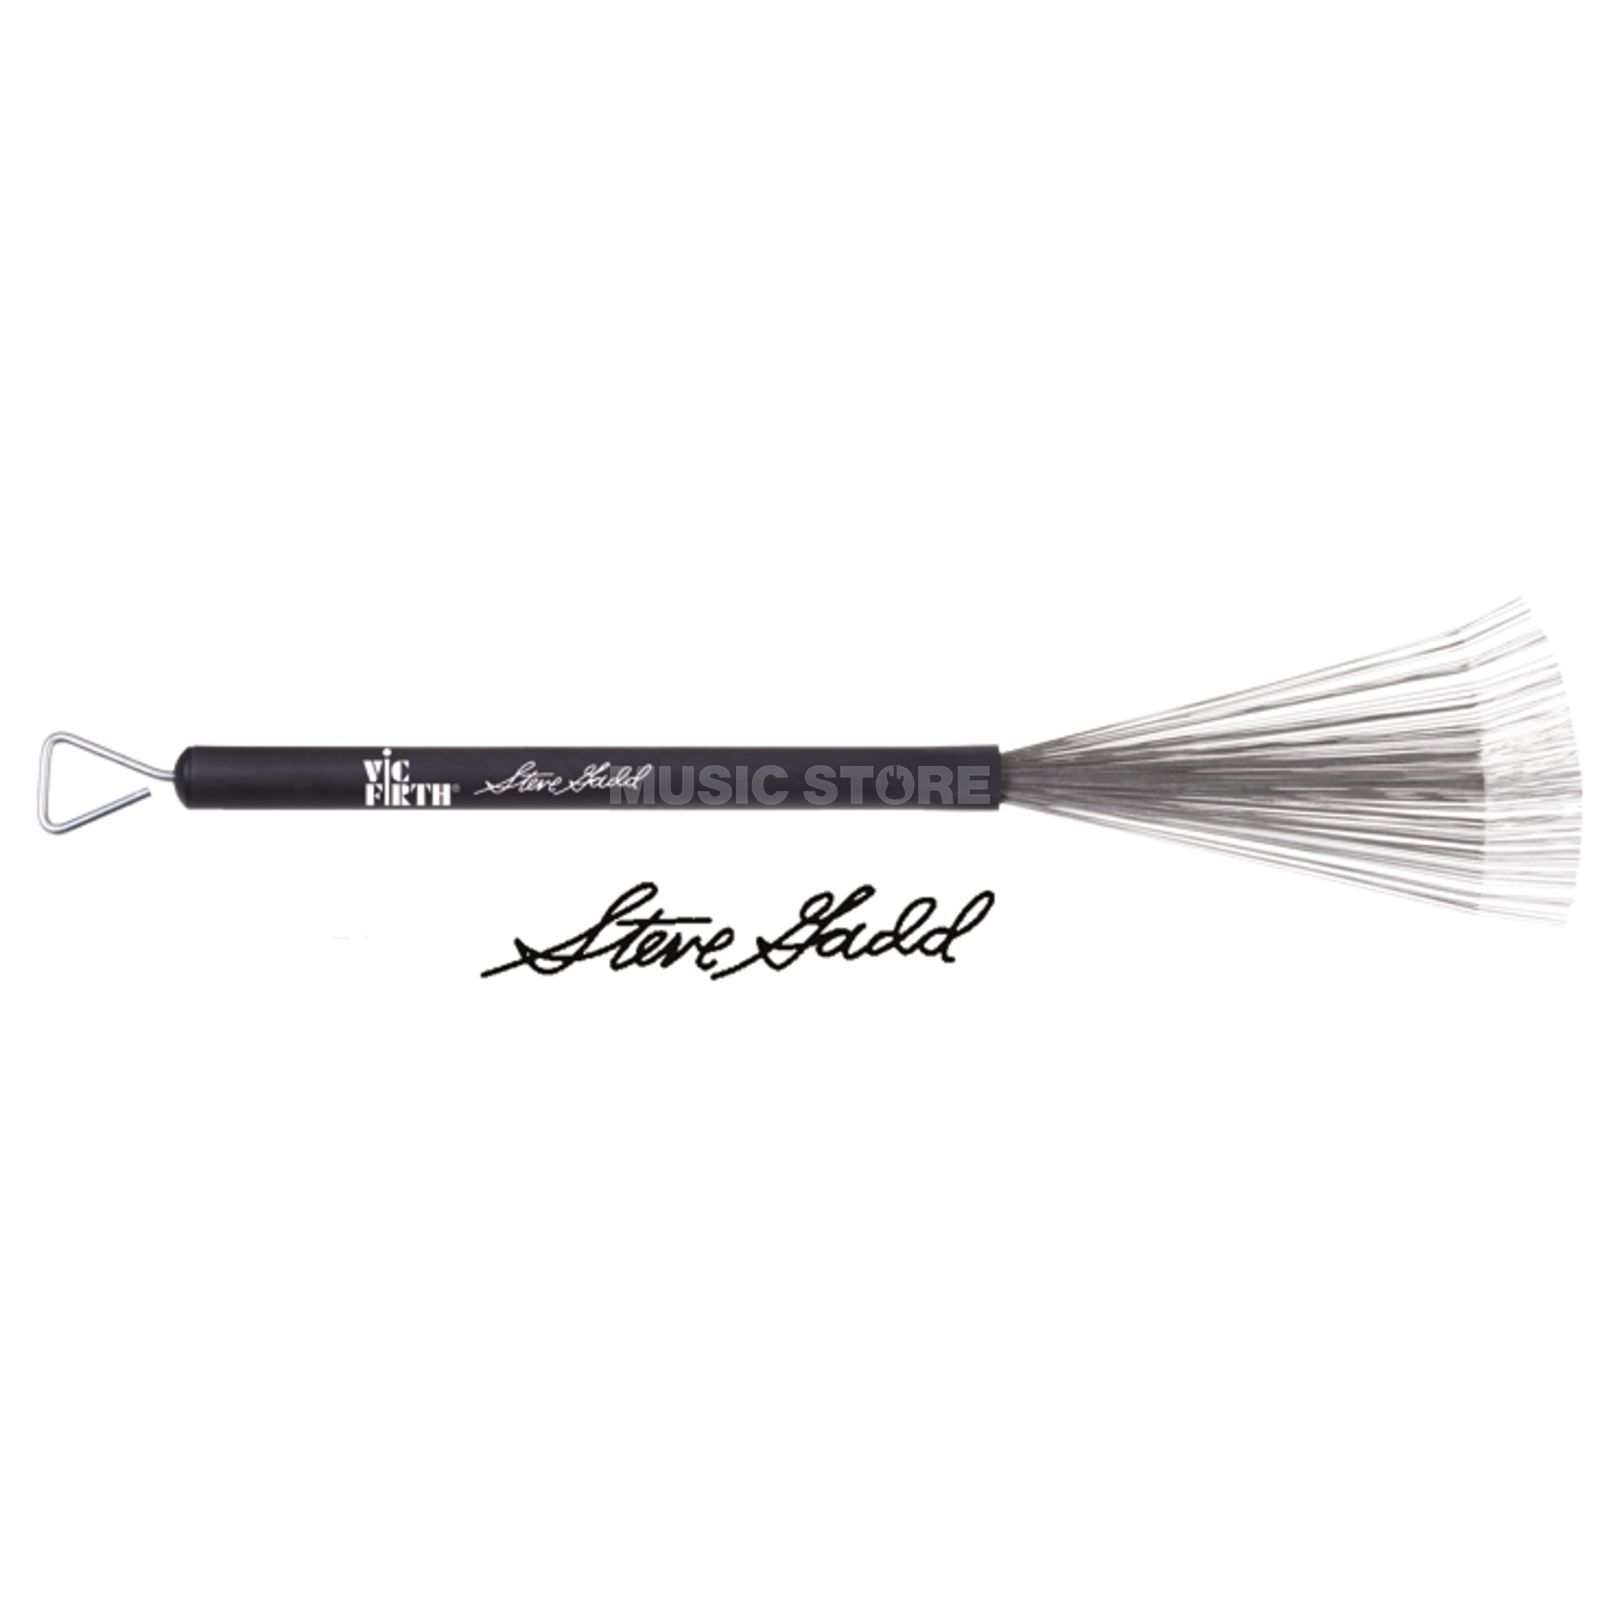 Vic-Firth Steve Gadd Wire Brushes SGWB, Signature Series Zdjęcie produktu